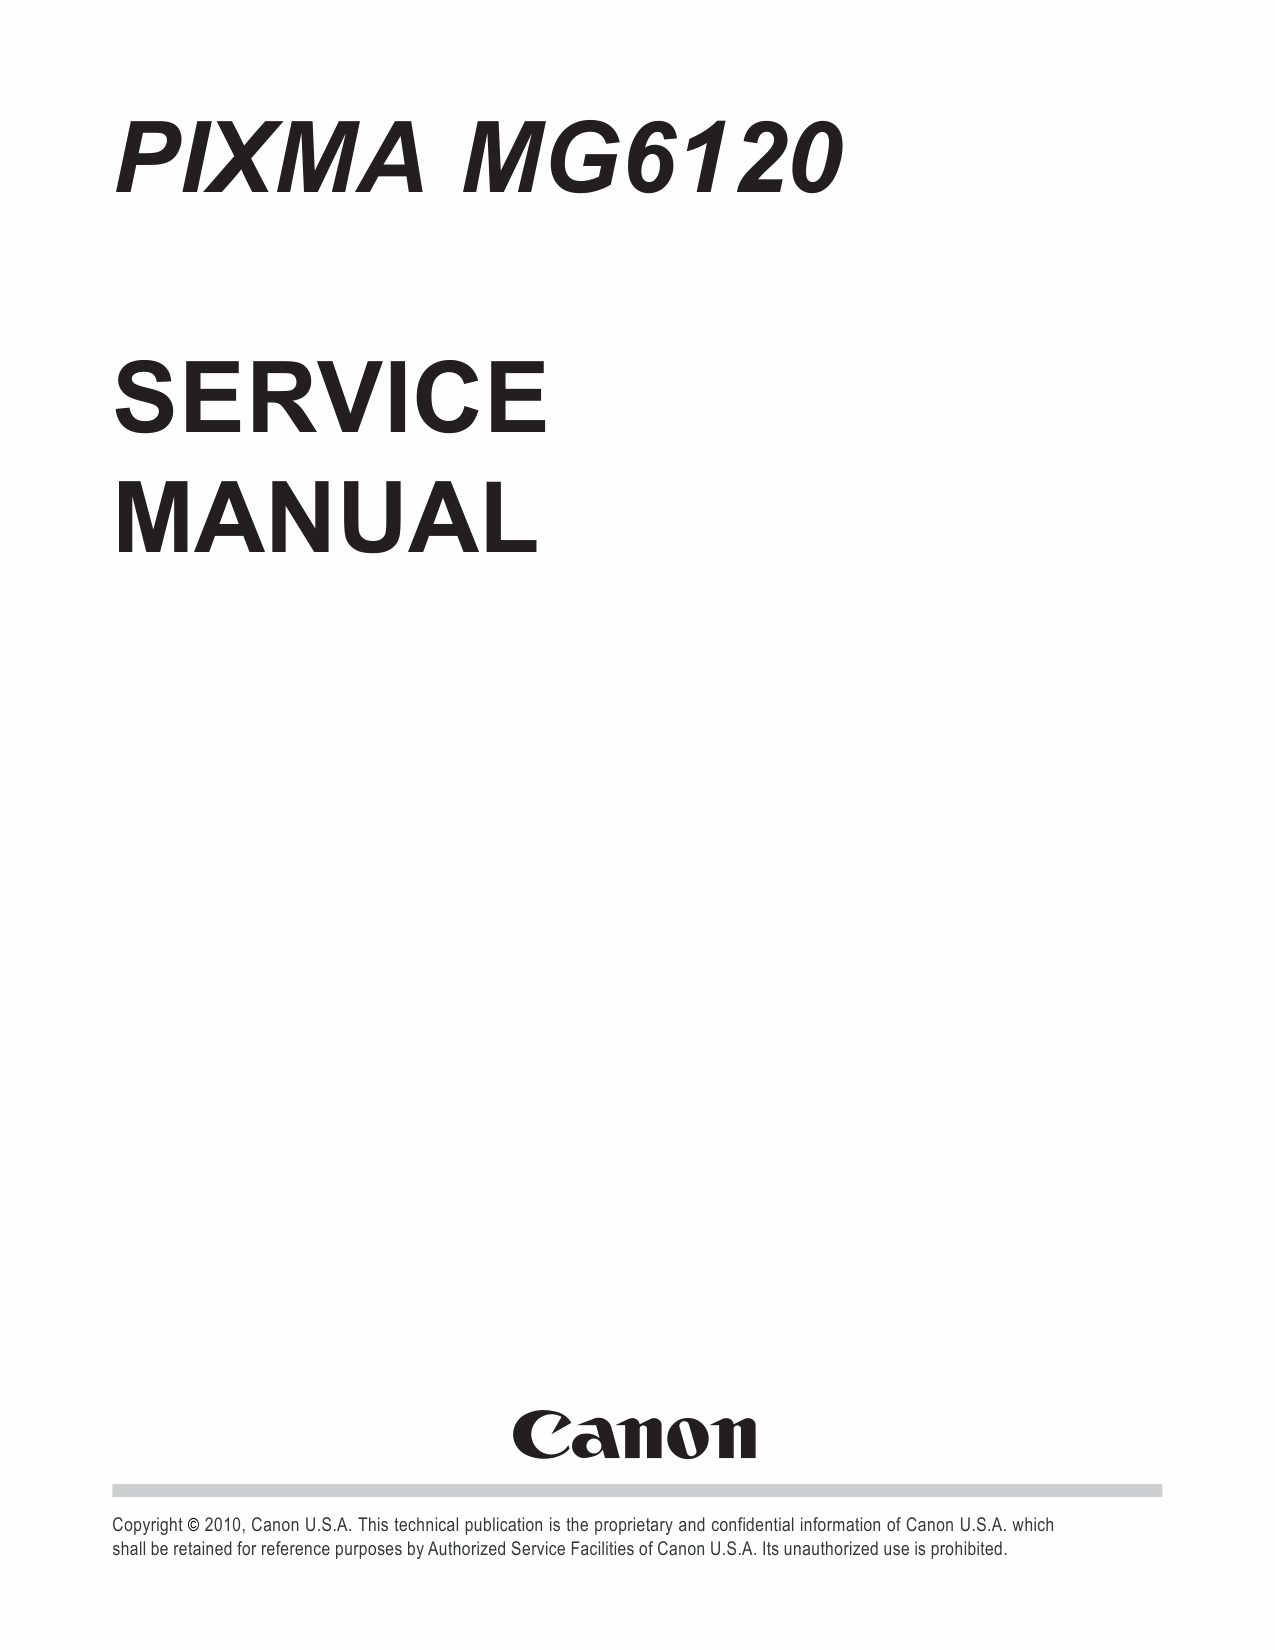 Canon PIXMA MG6120 Service Manual-1